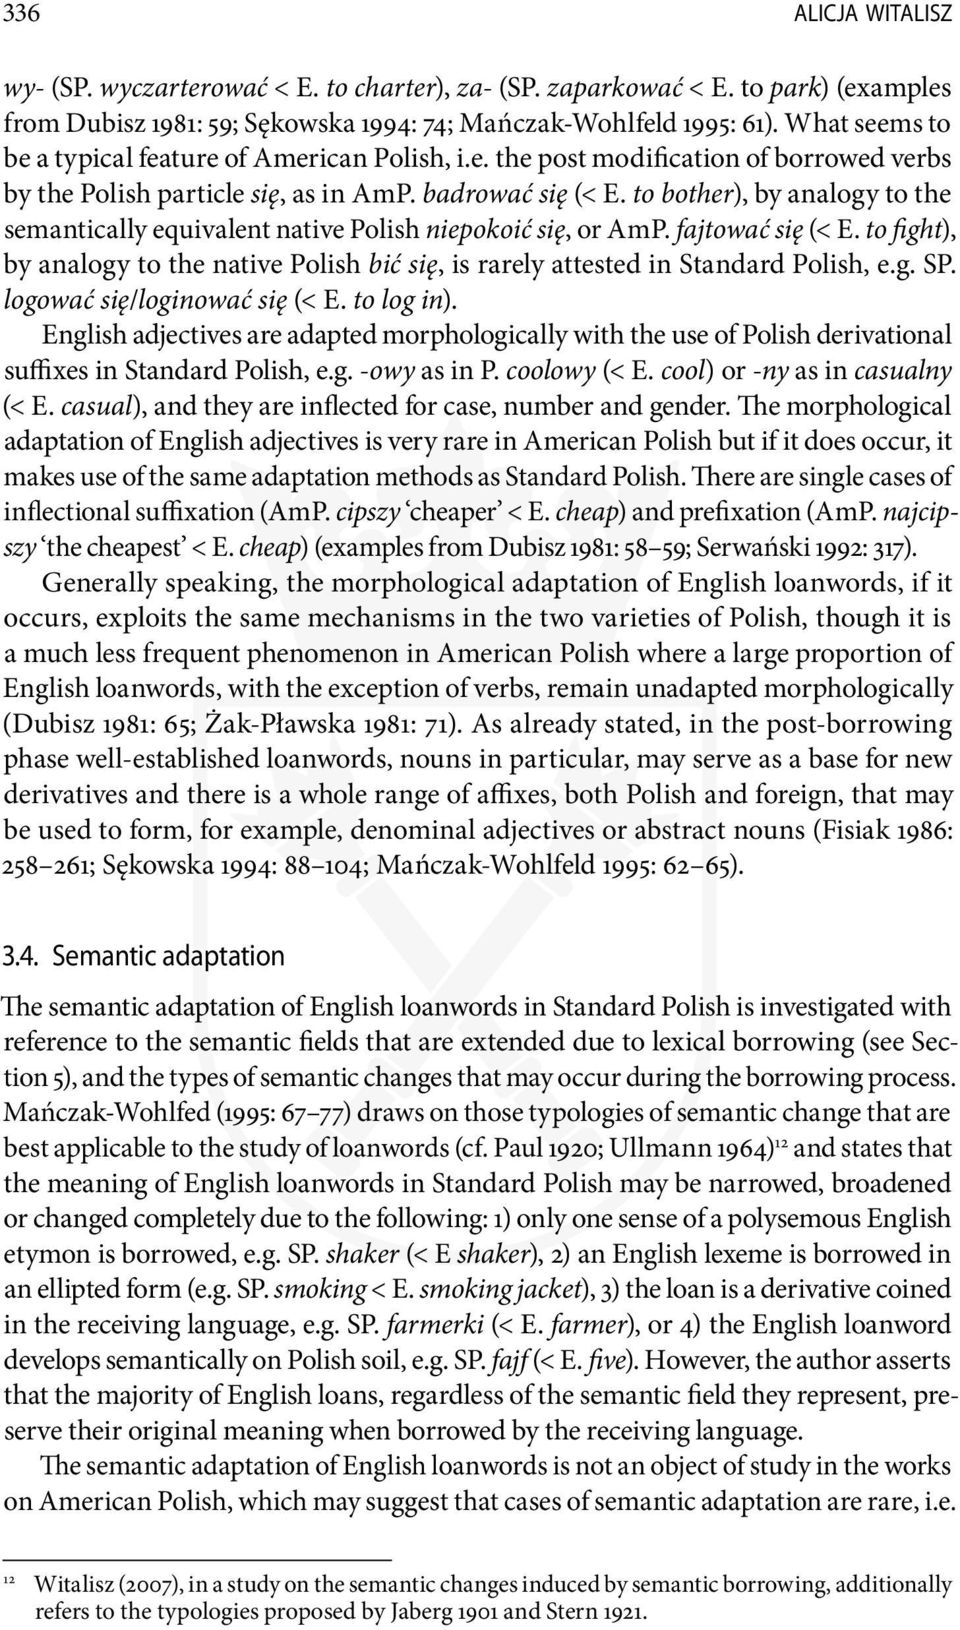 to bother), by analogy to the semantically equivalent native Polish niepokoić się, or AmP. fajtować się (< E.